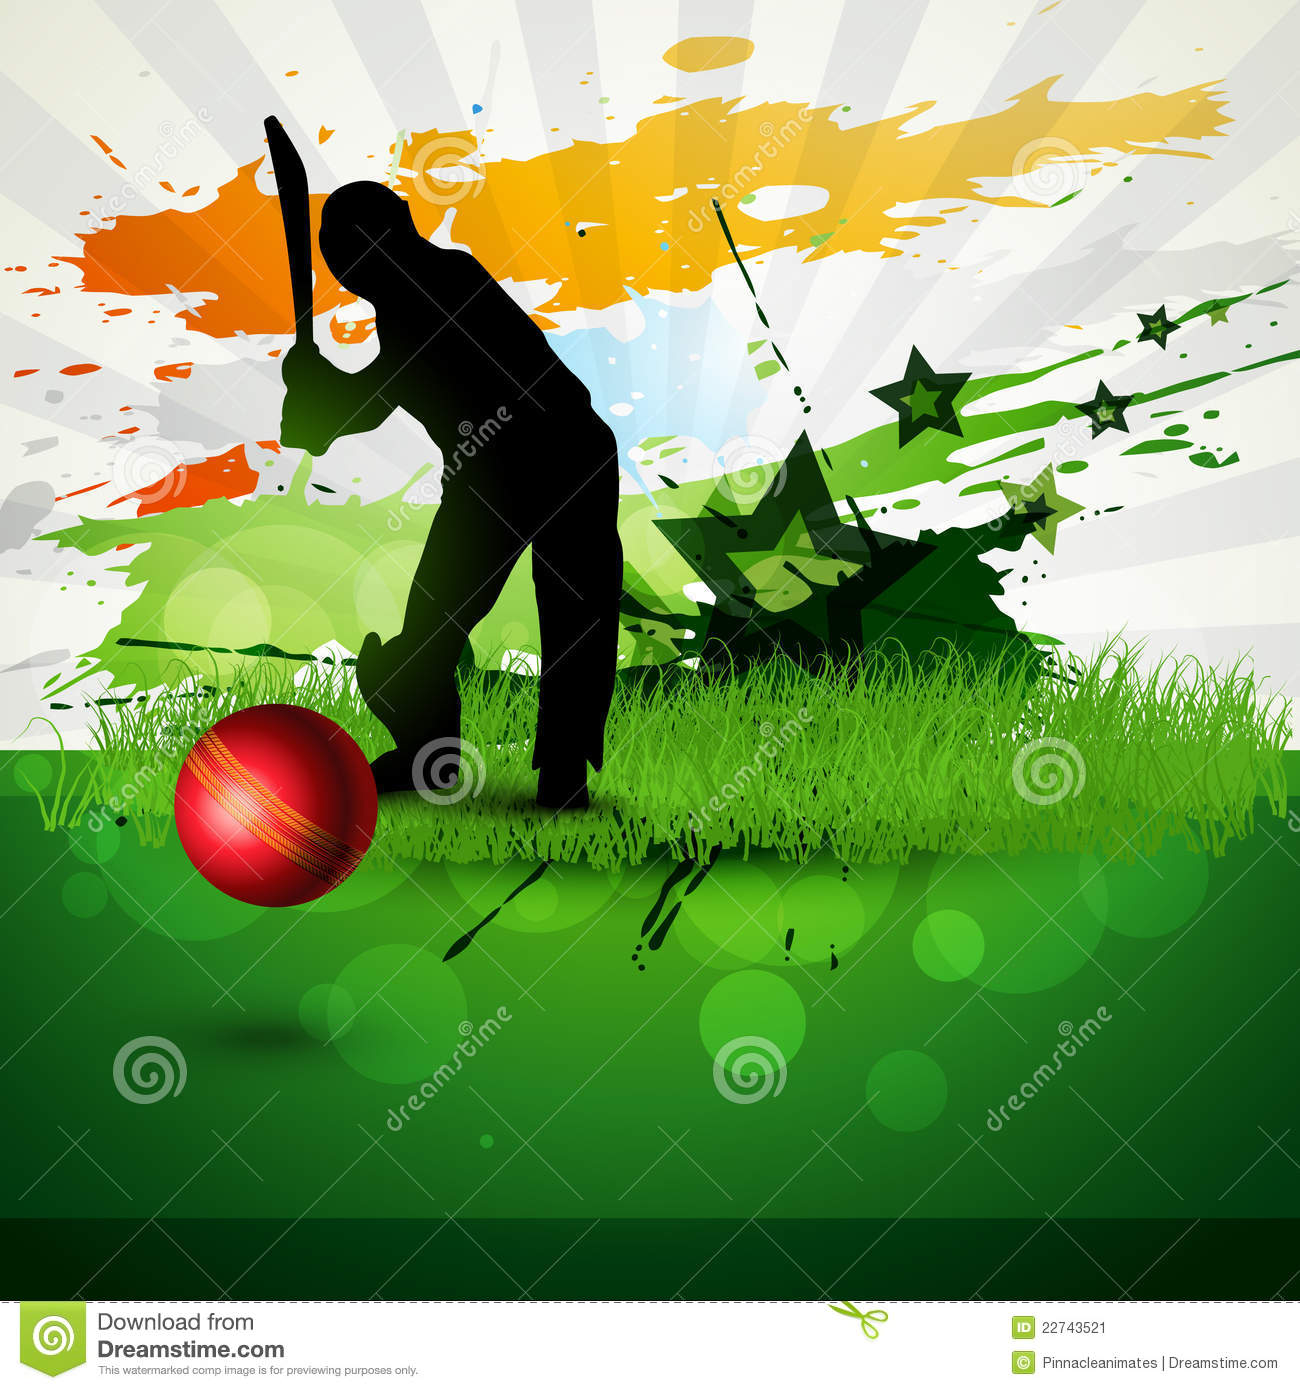 Cricket Vector Background Stock Vector. Illustration Of